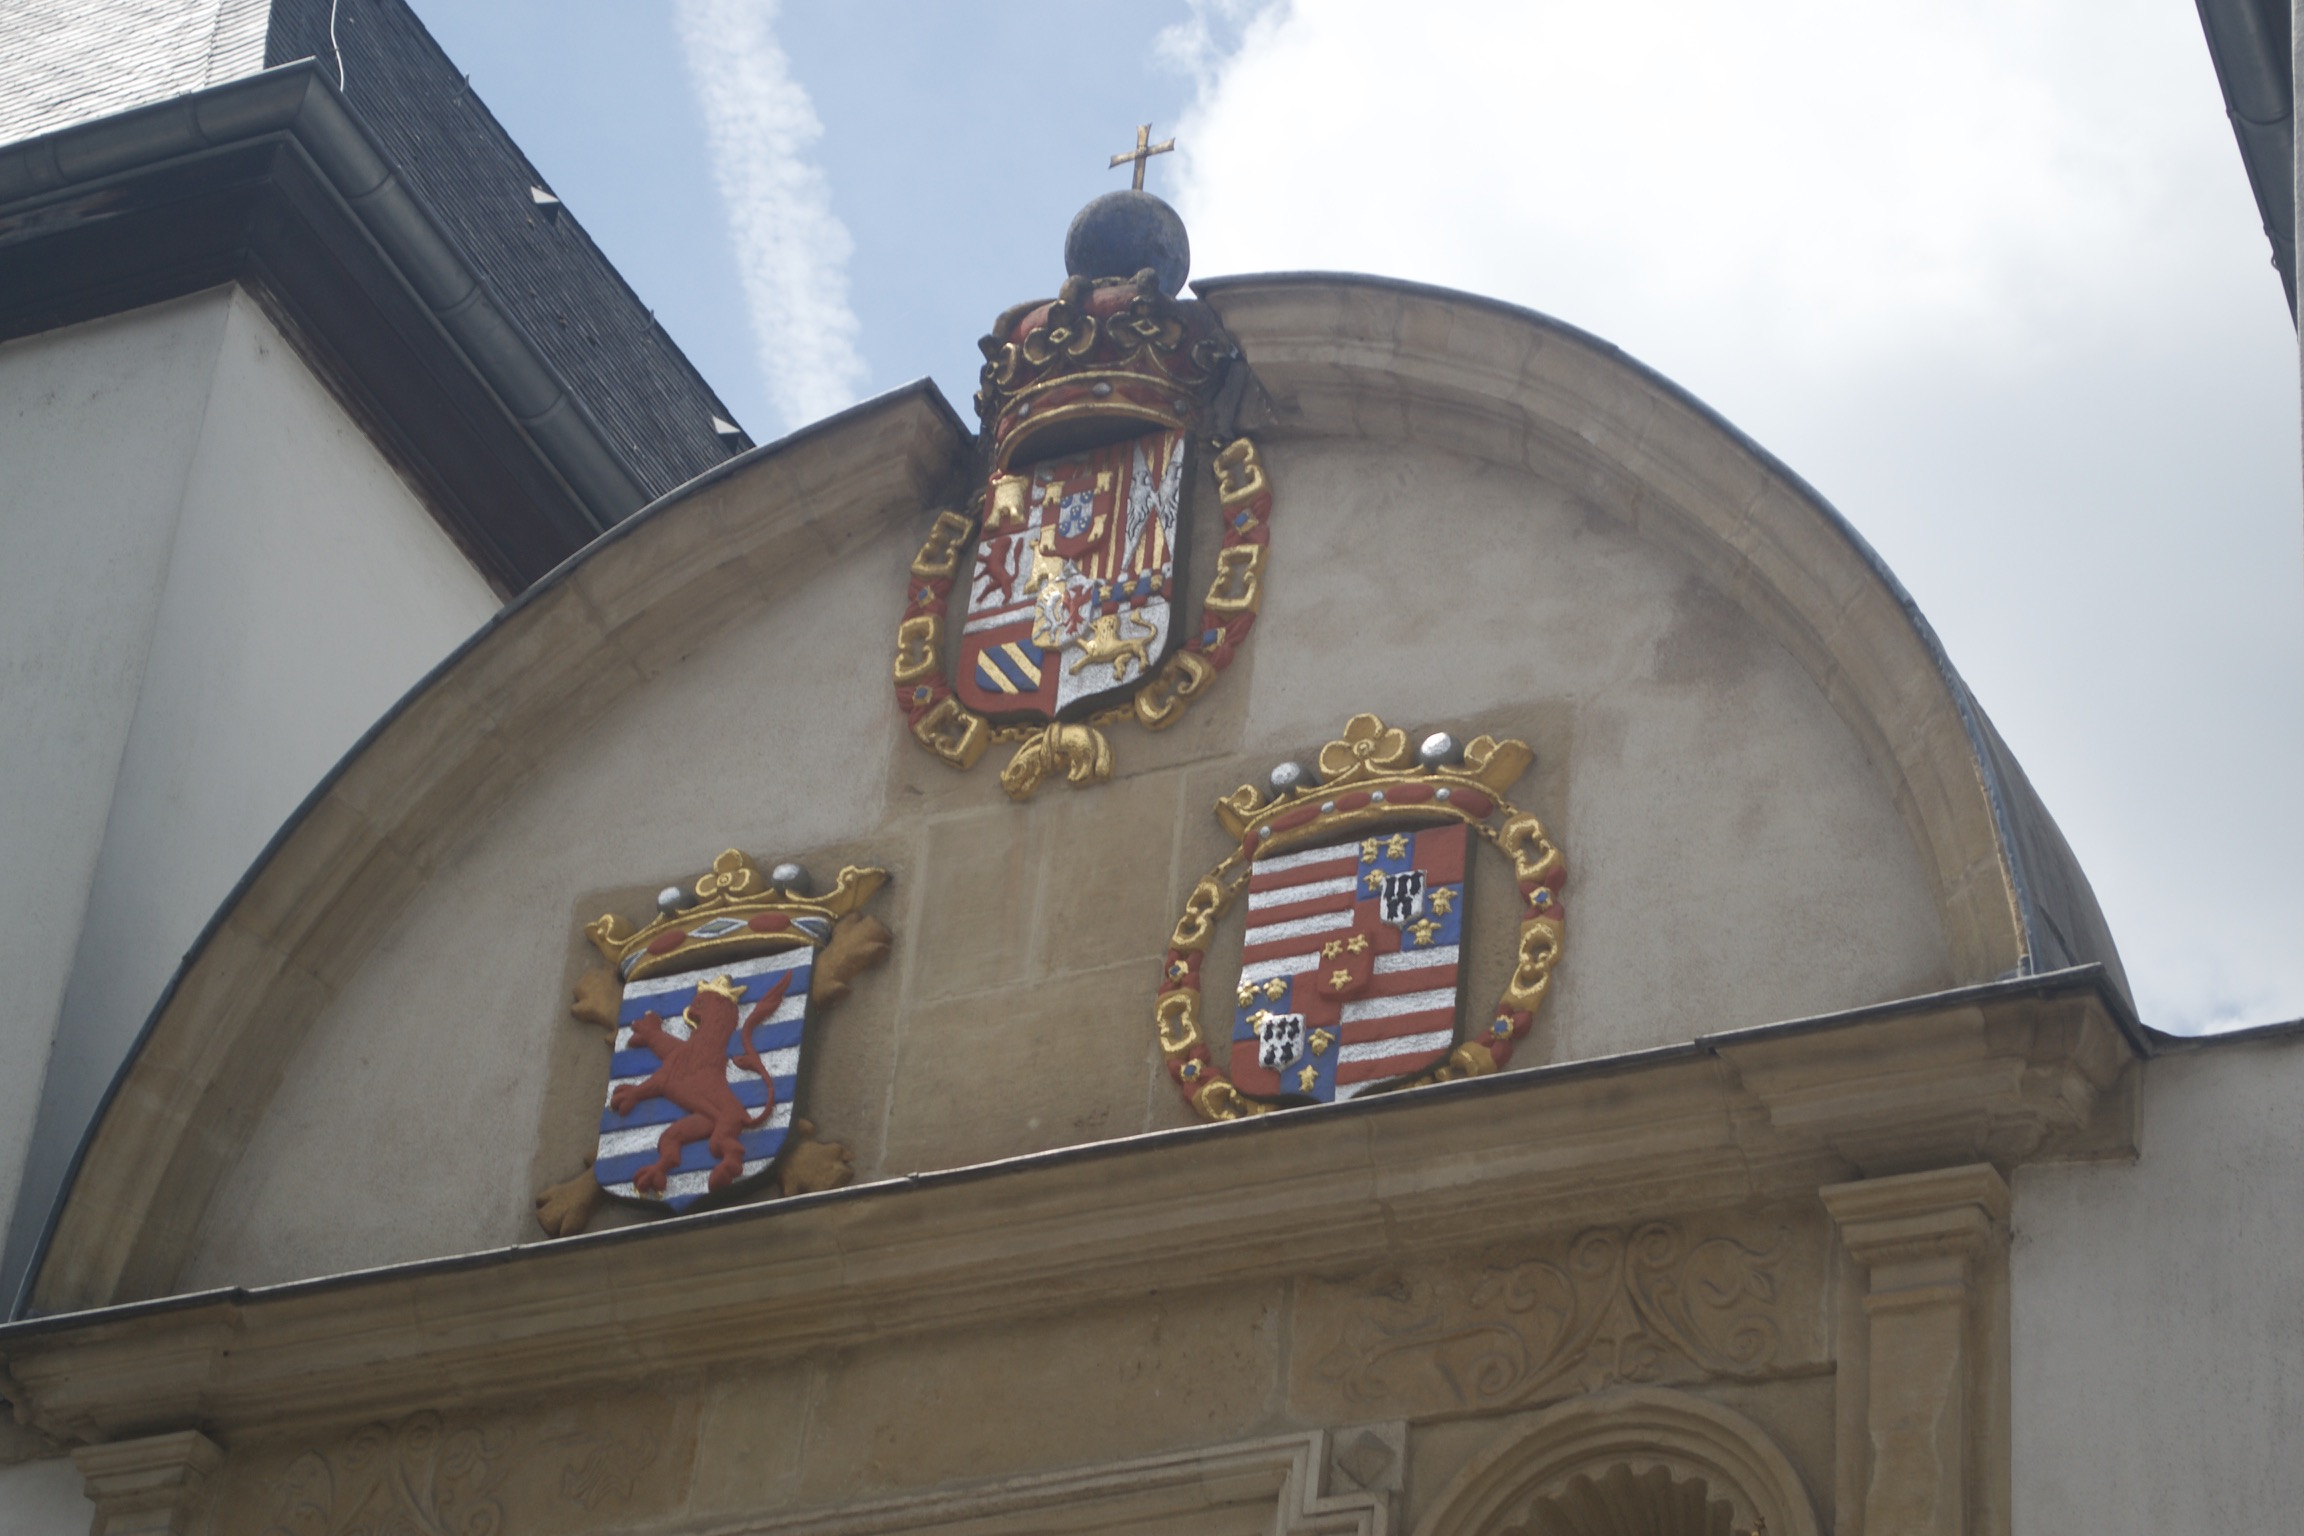 Three coats of arms, all red, yellow, and gold with lions, star, stripes, and crowns on a brown stone building.